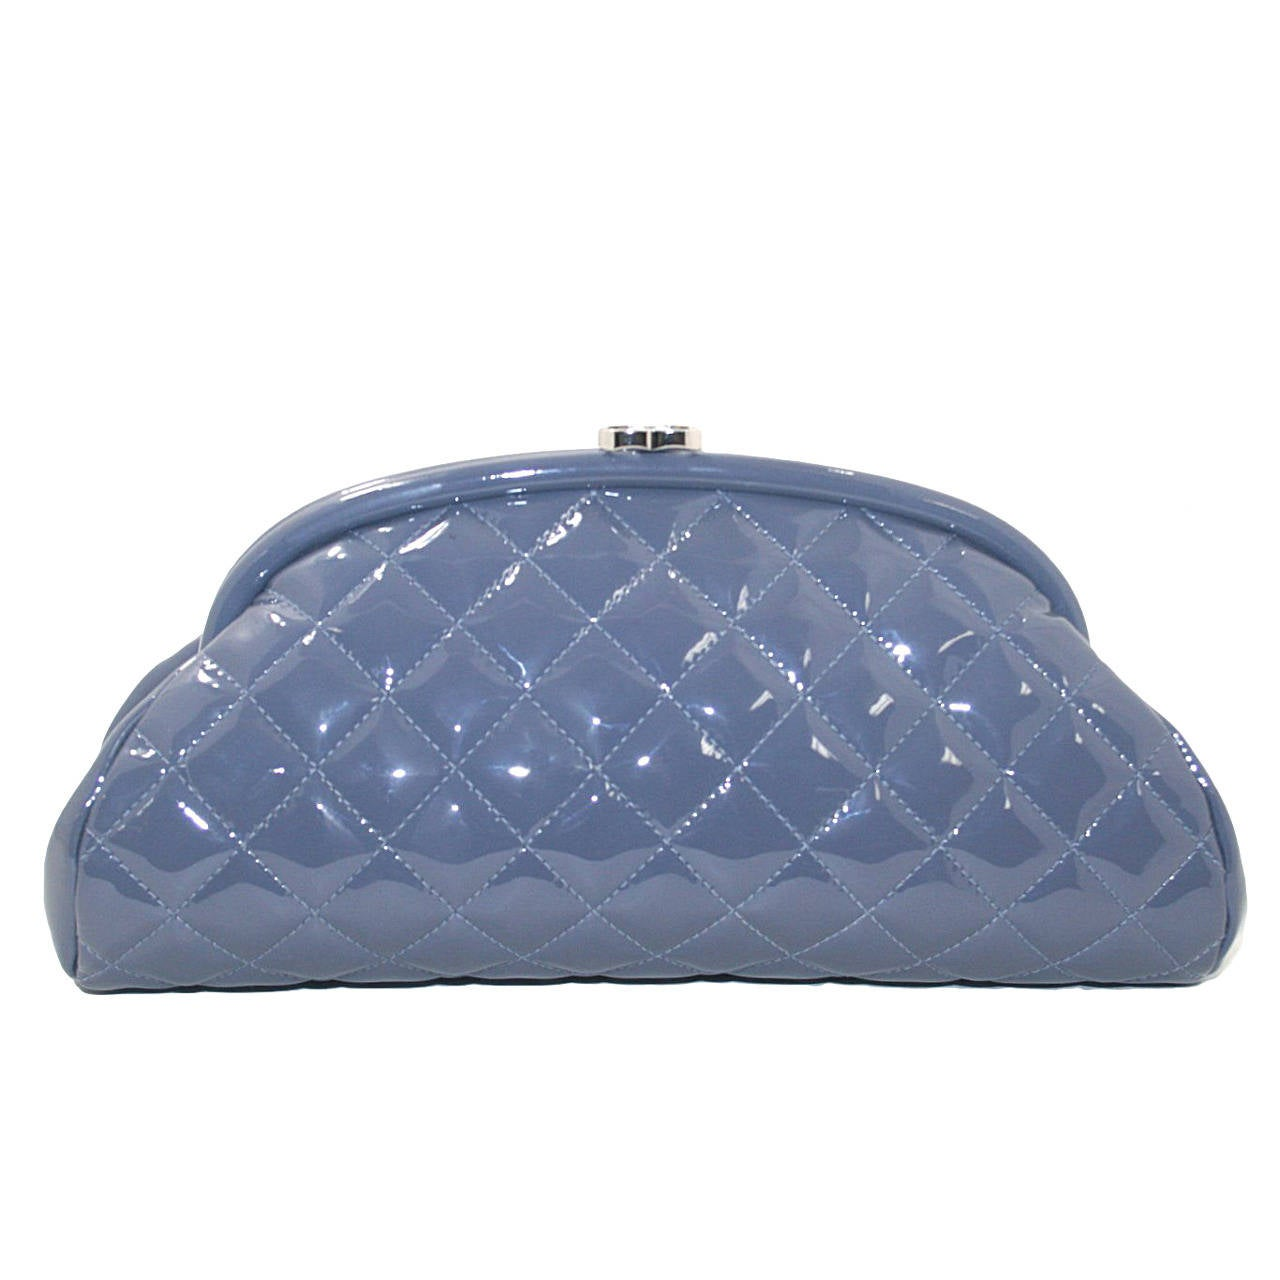 Chanel Lavender Timeless Clutch in Patent Leather 1